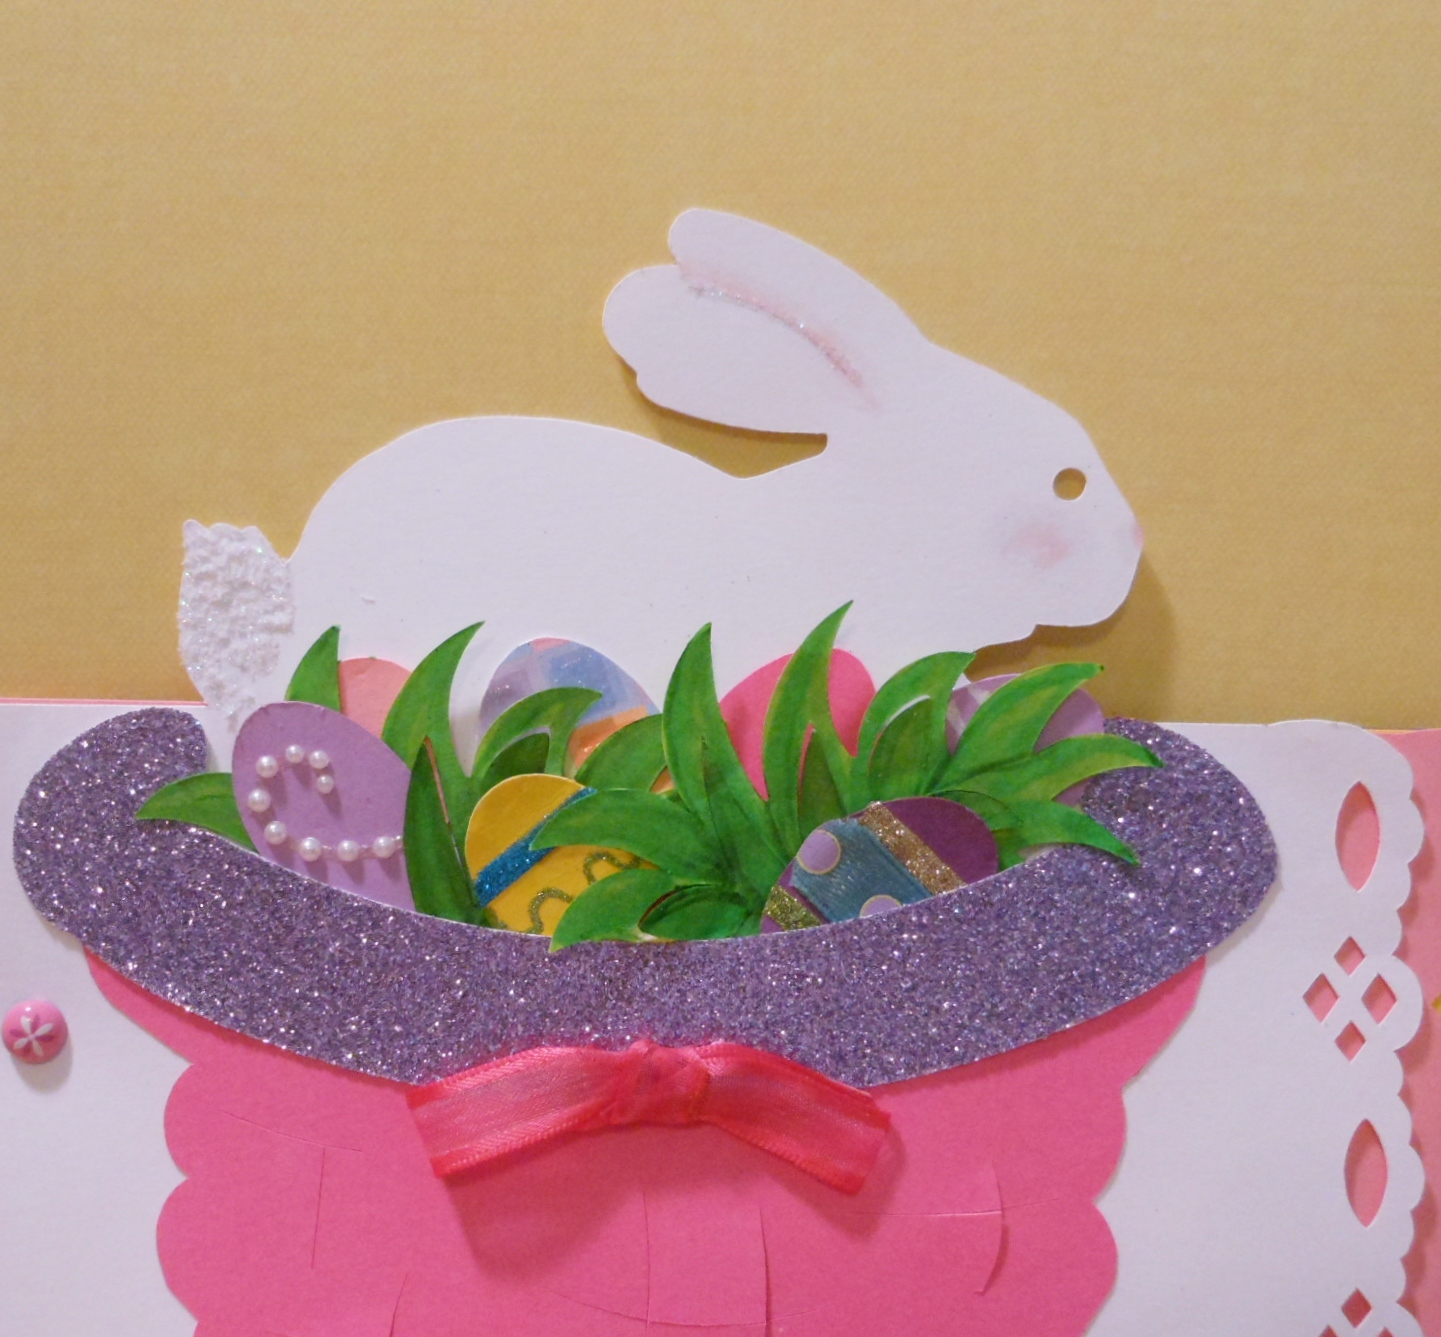 I Used The Basket From The Bosskut File: Easter Basket, Bunny And Eggs I  Cut The Eggs And Decorated And Hide Them In The Popkut Grass To Make The  Front